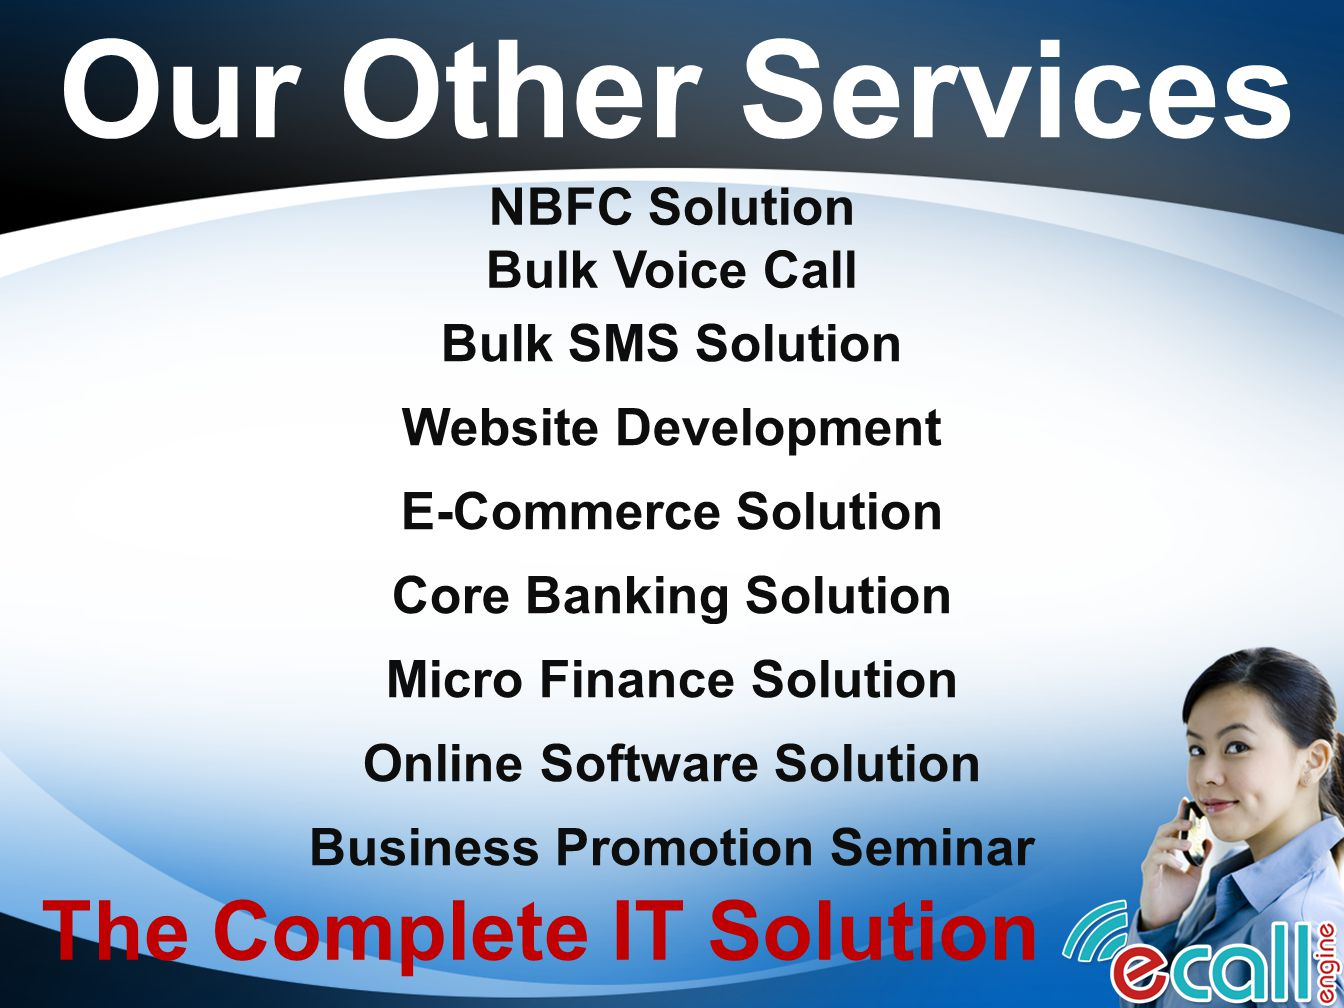 Our Other Services Bulk Voice Call Bulk SMS Solution Online Software Solution Website Development Core Banking Solution Business Promotion Seminar E-Commerce Solution The Complete IT Solution Micro Finance Solution NBFC Solution